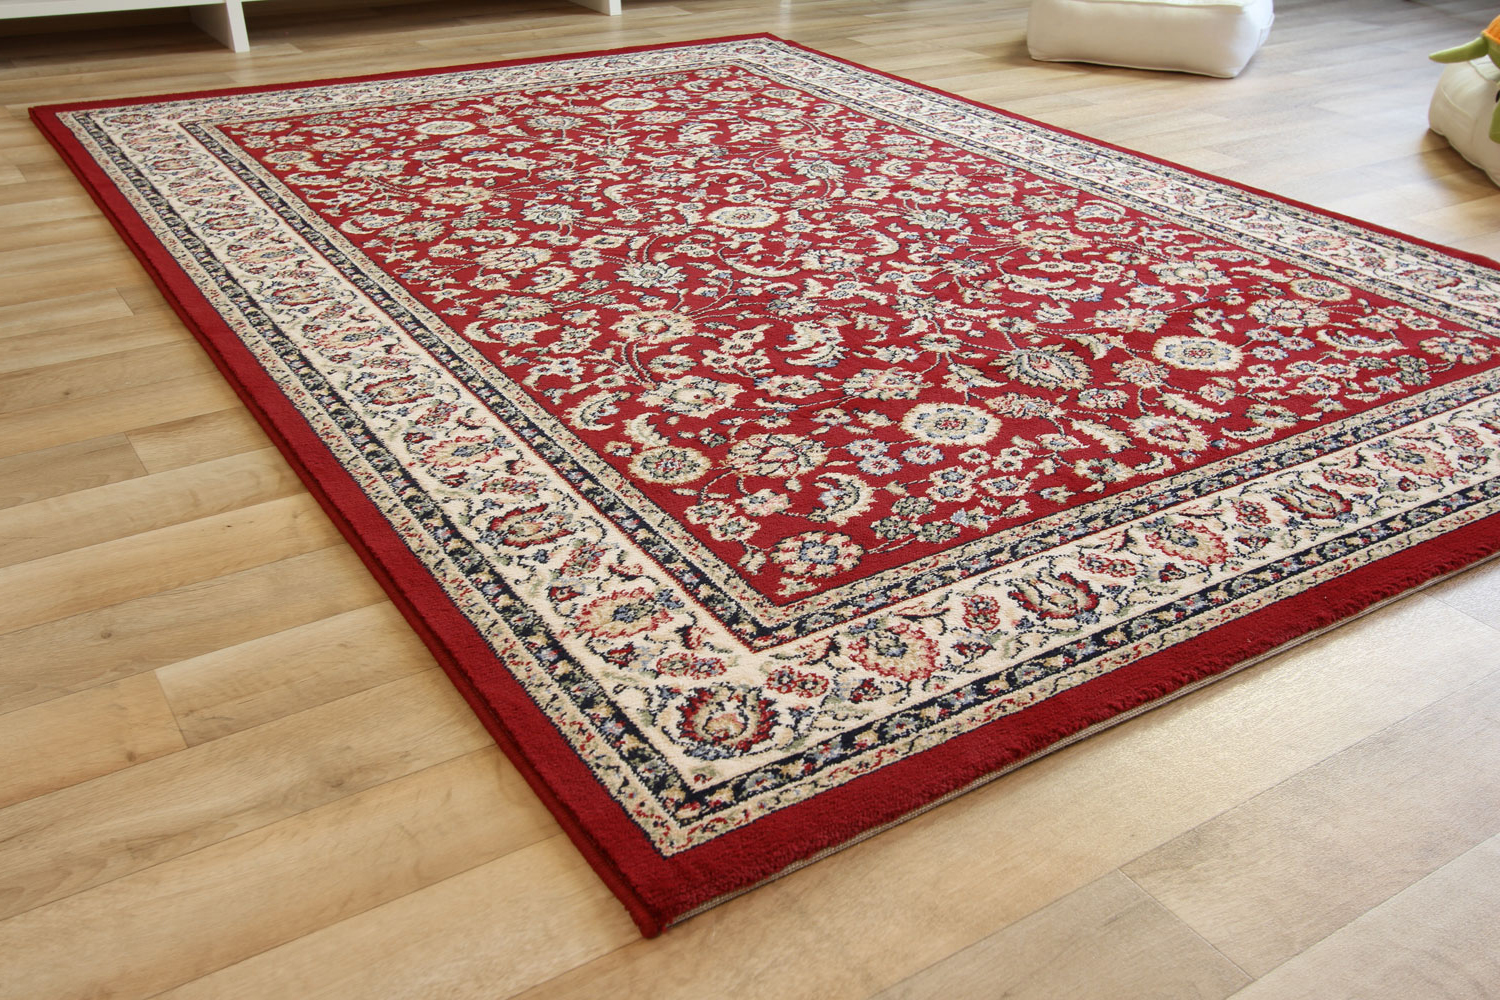 Des Tapis Pas Cher Idees De Decoration Interieure French Decor